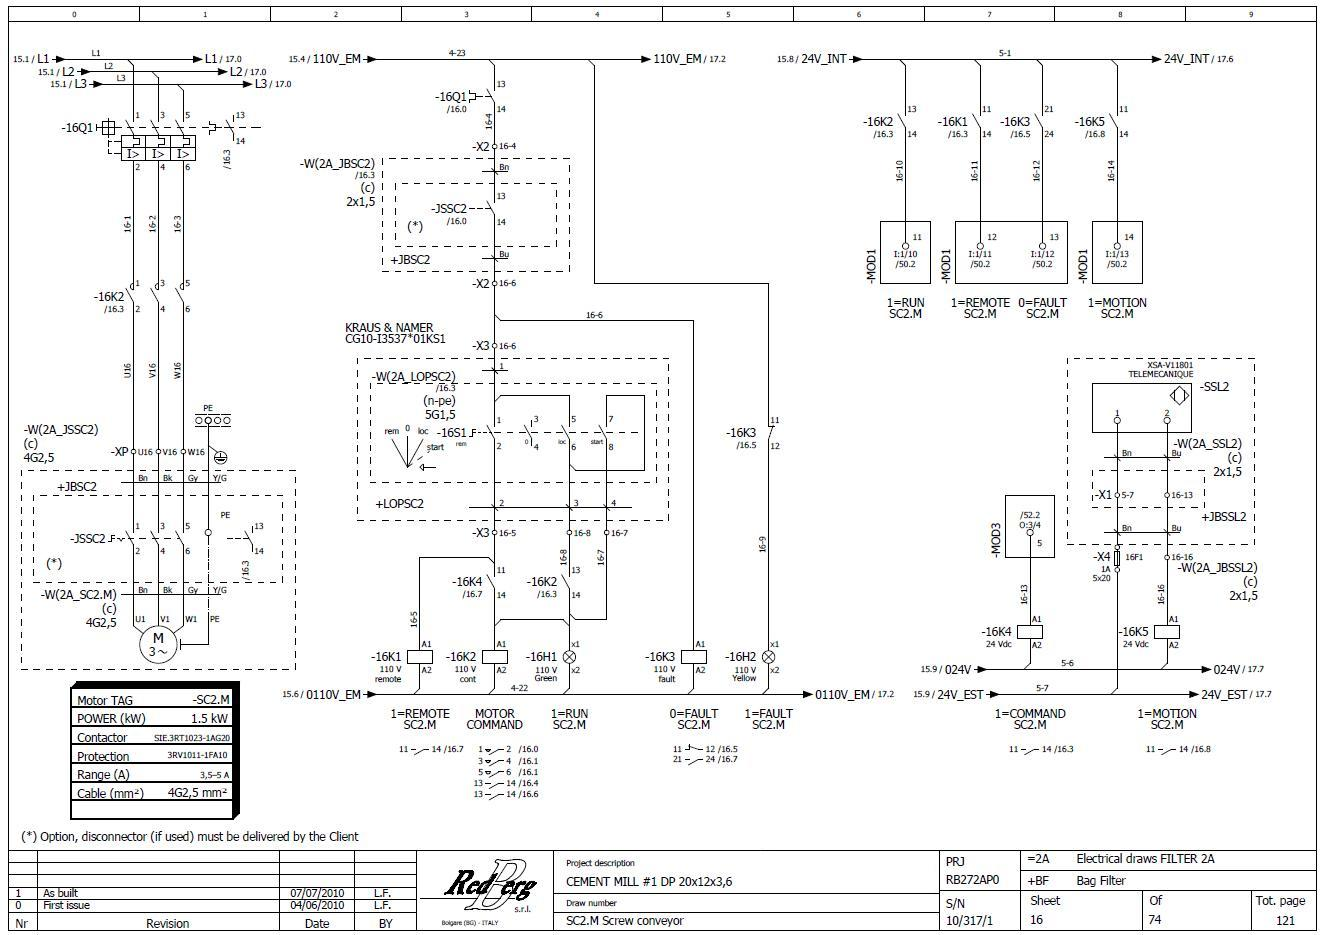 Schema electrical p&id drawings the wiring diagram readingrat net electrical engineering wiring diagrams at aneh.co